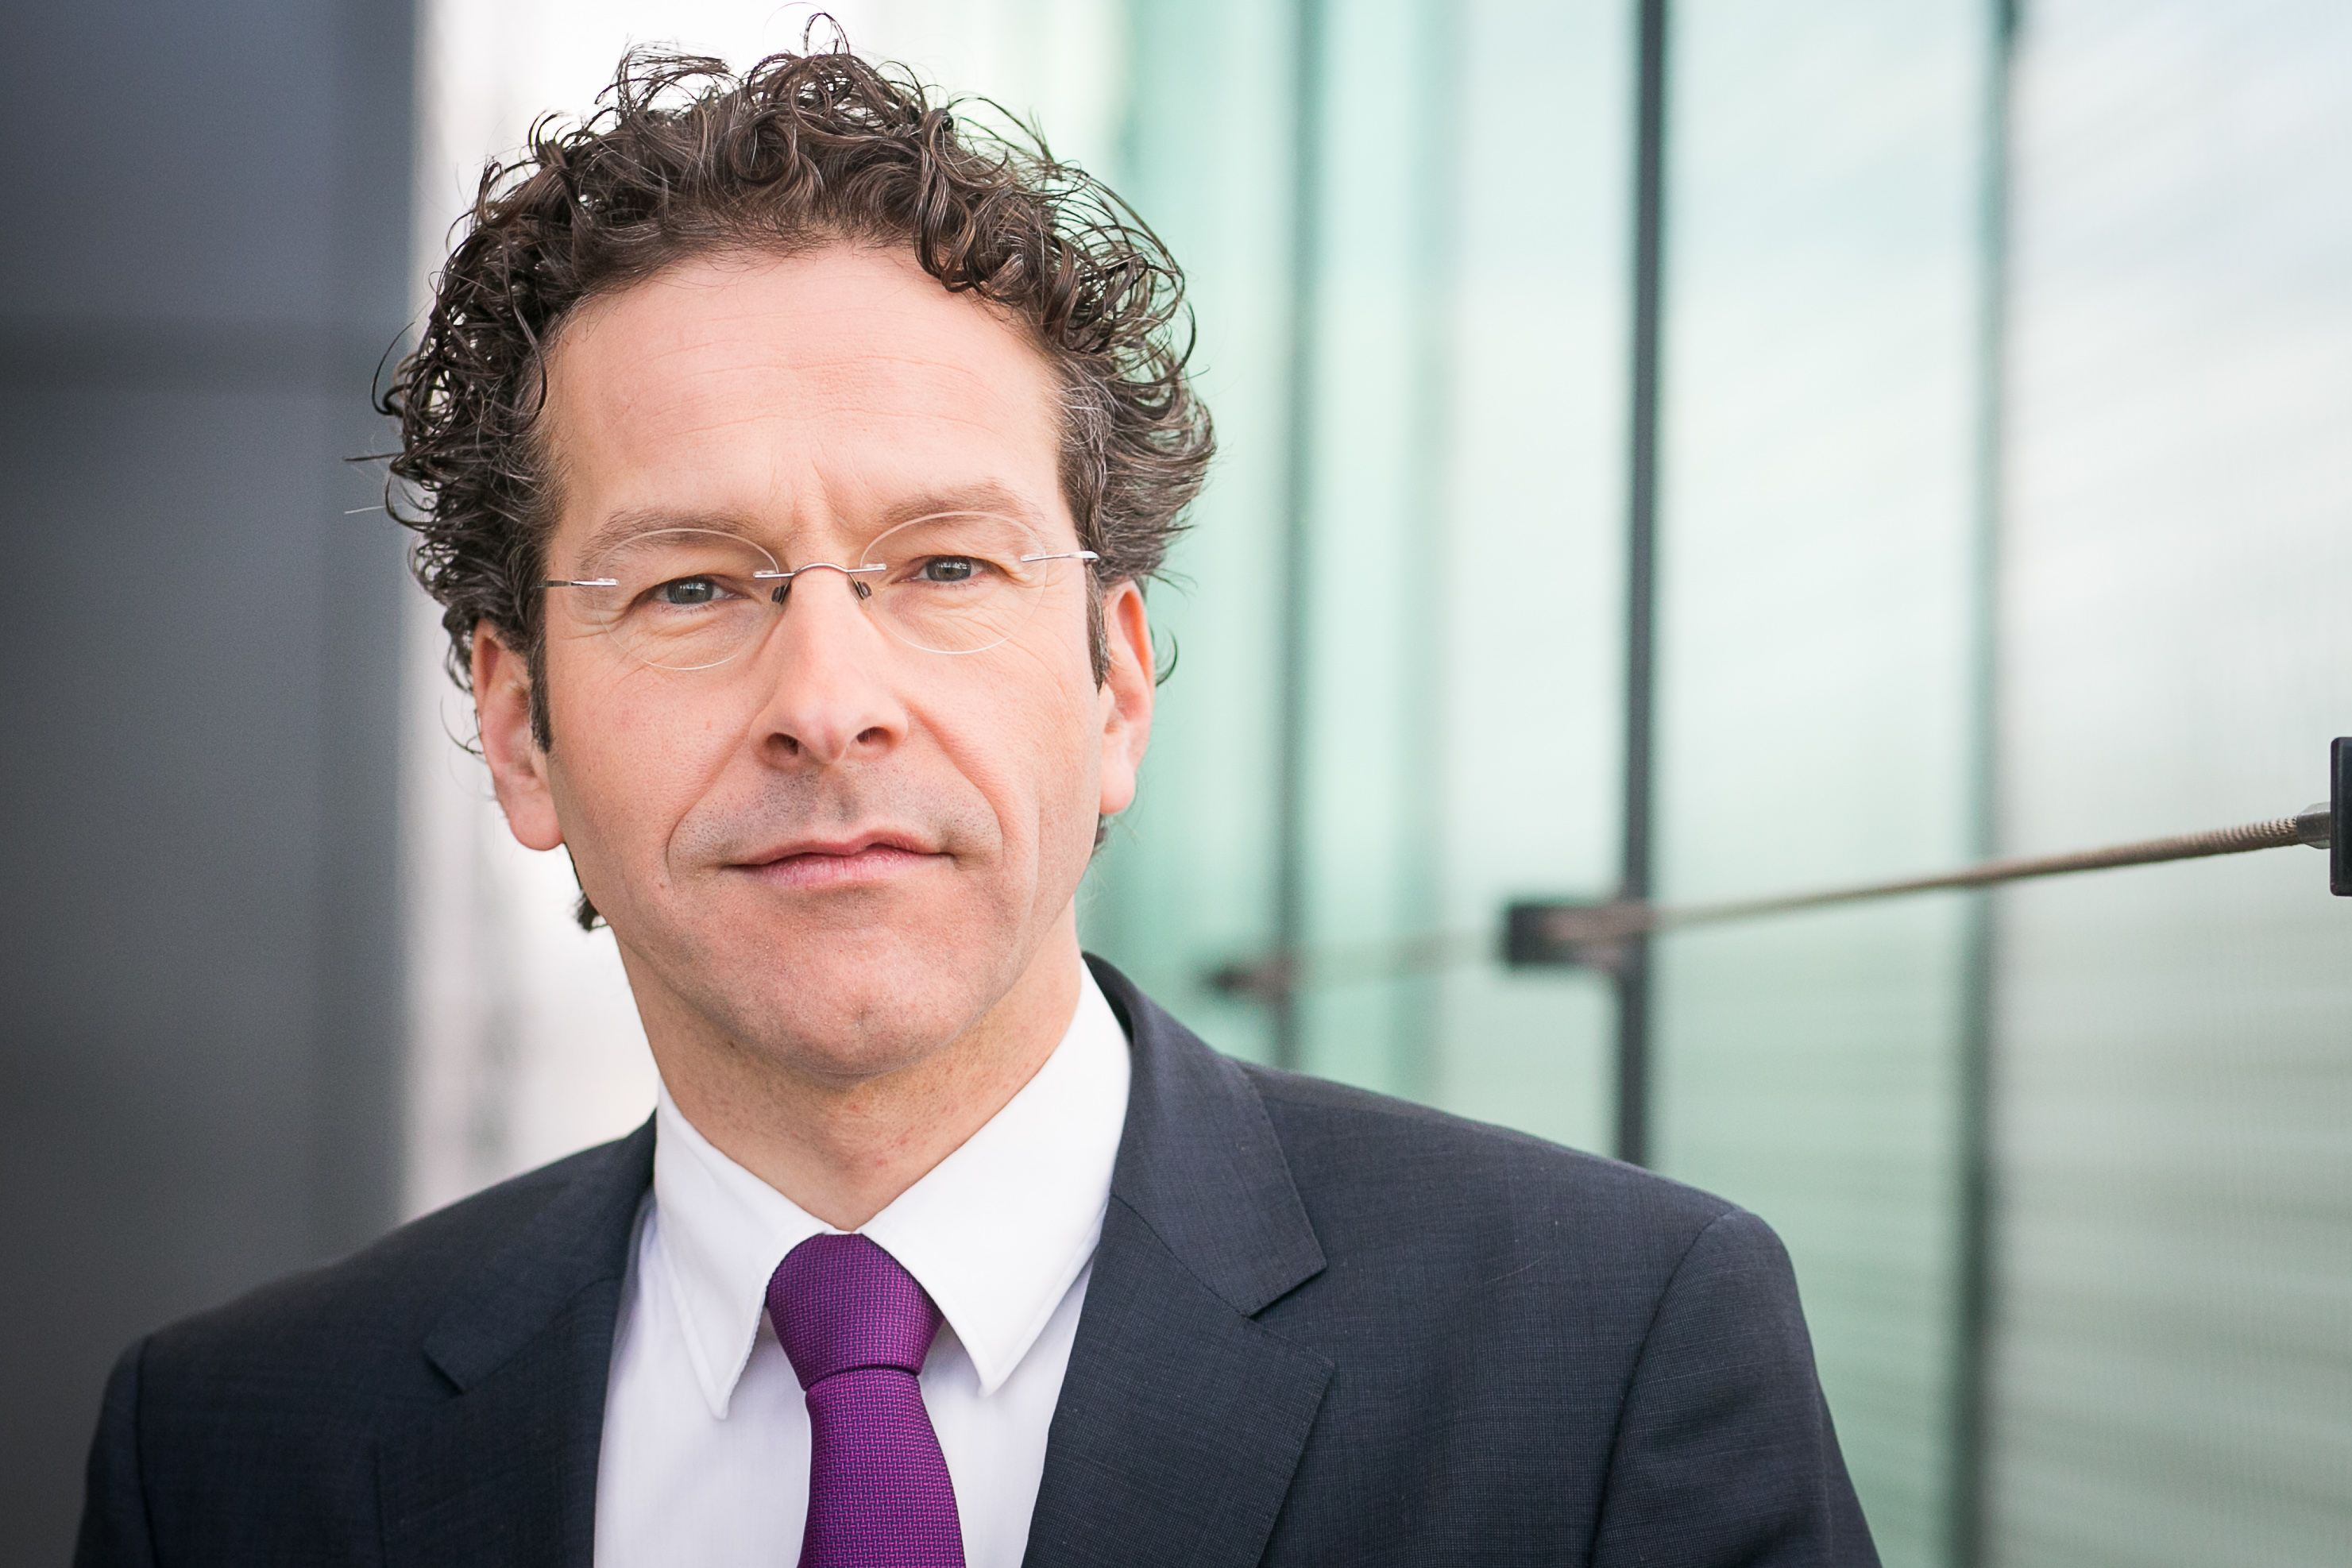 General Election: Dutch Finance Minister Calls For